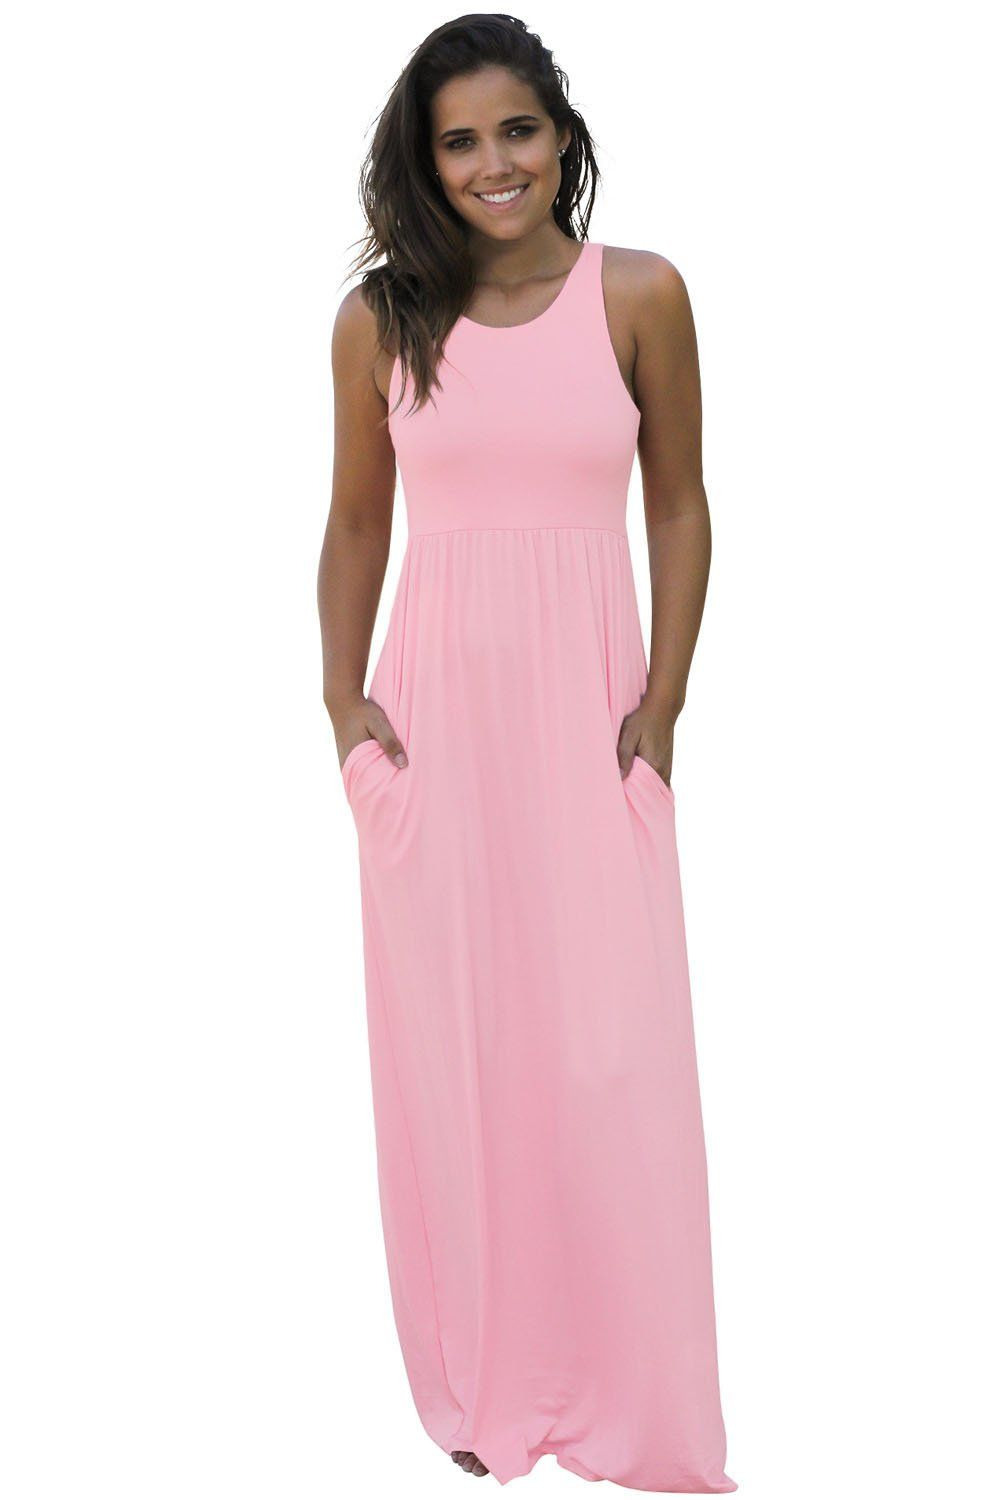 Casual Pale Pink Racerback Maxi Dress with Pockets